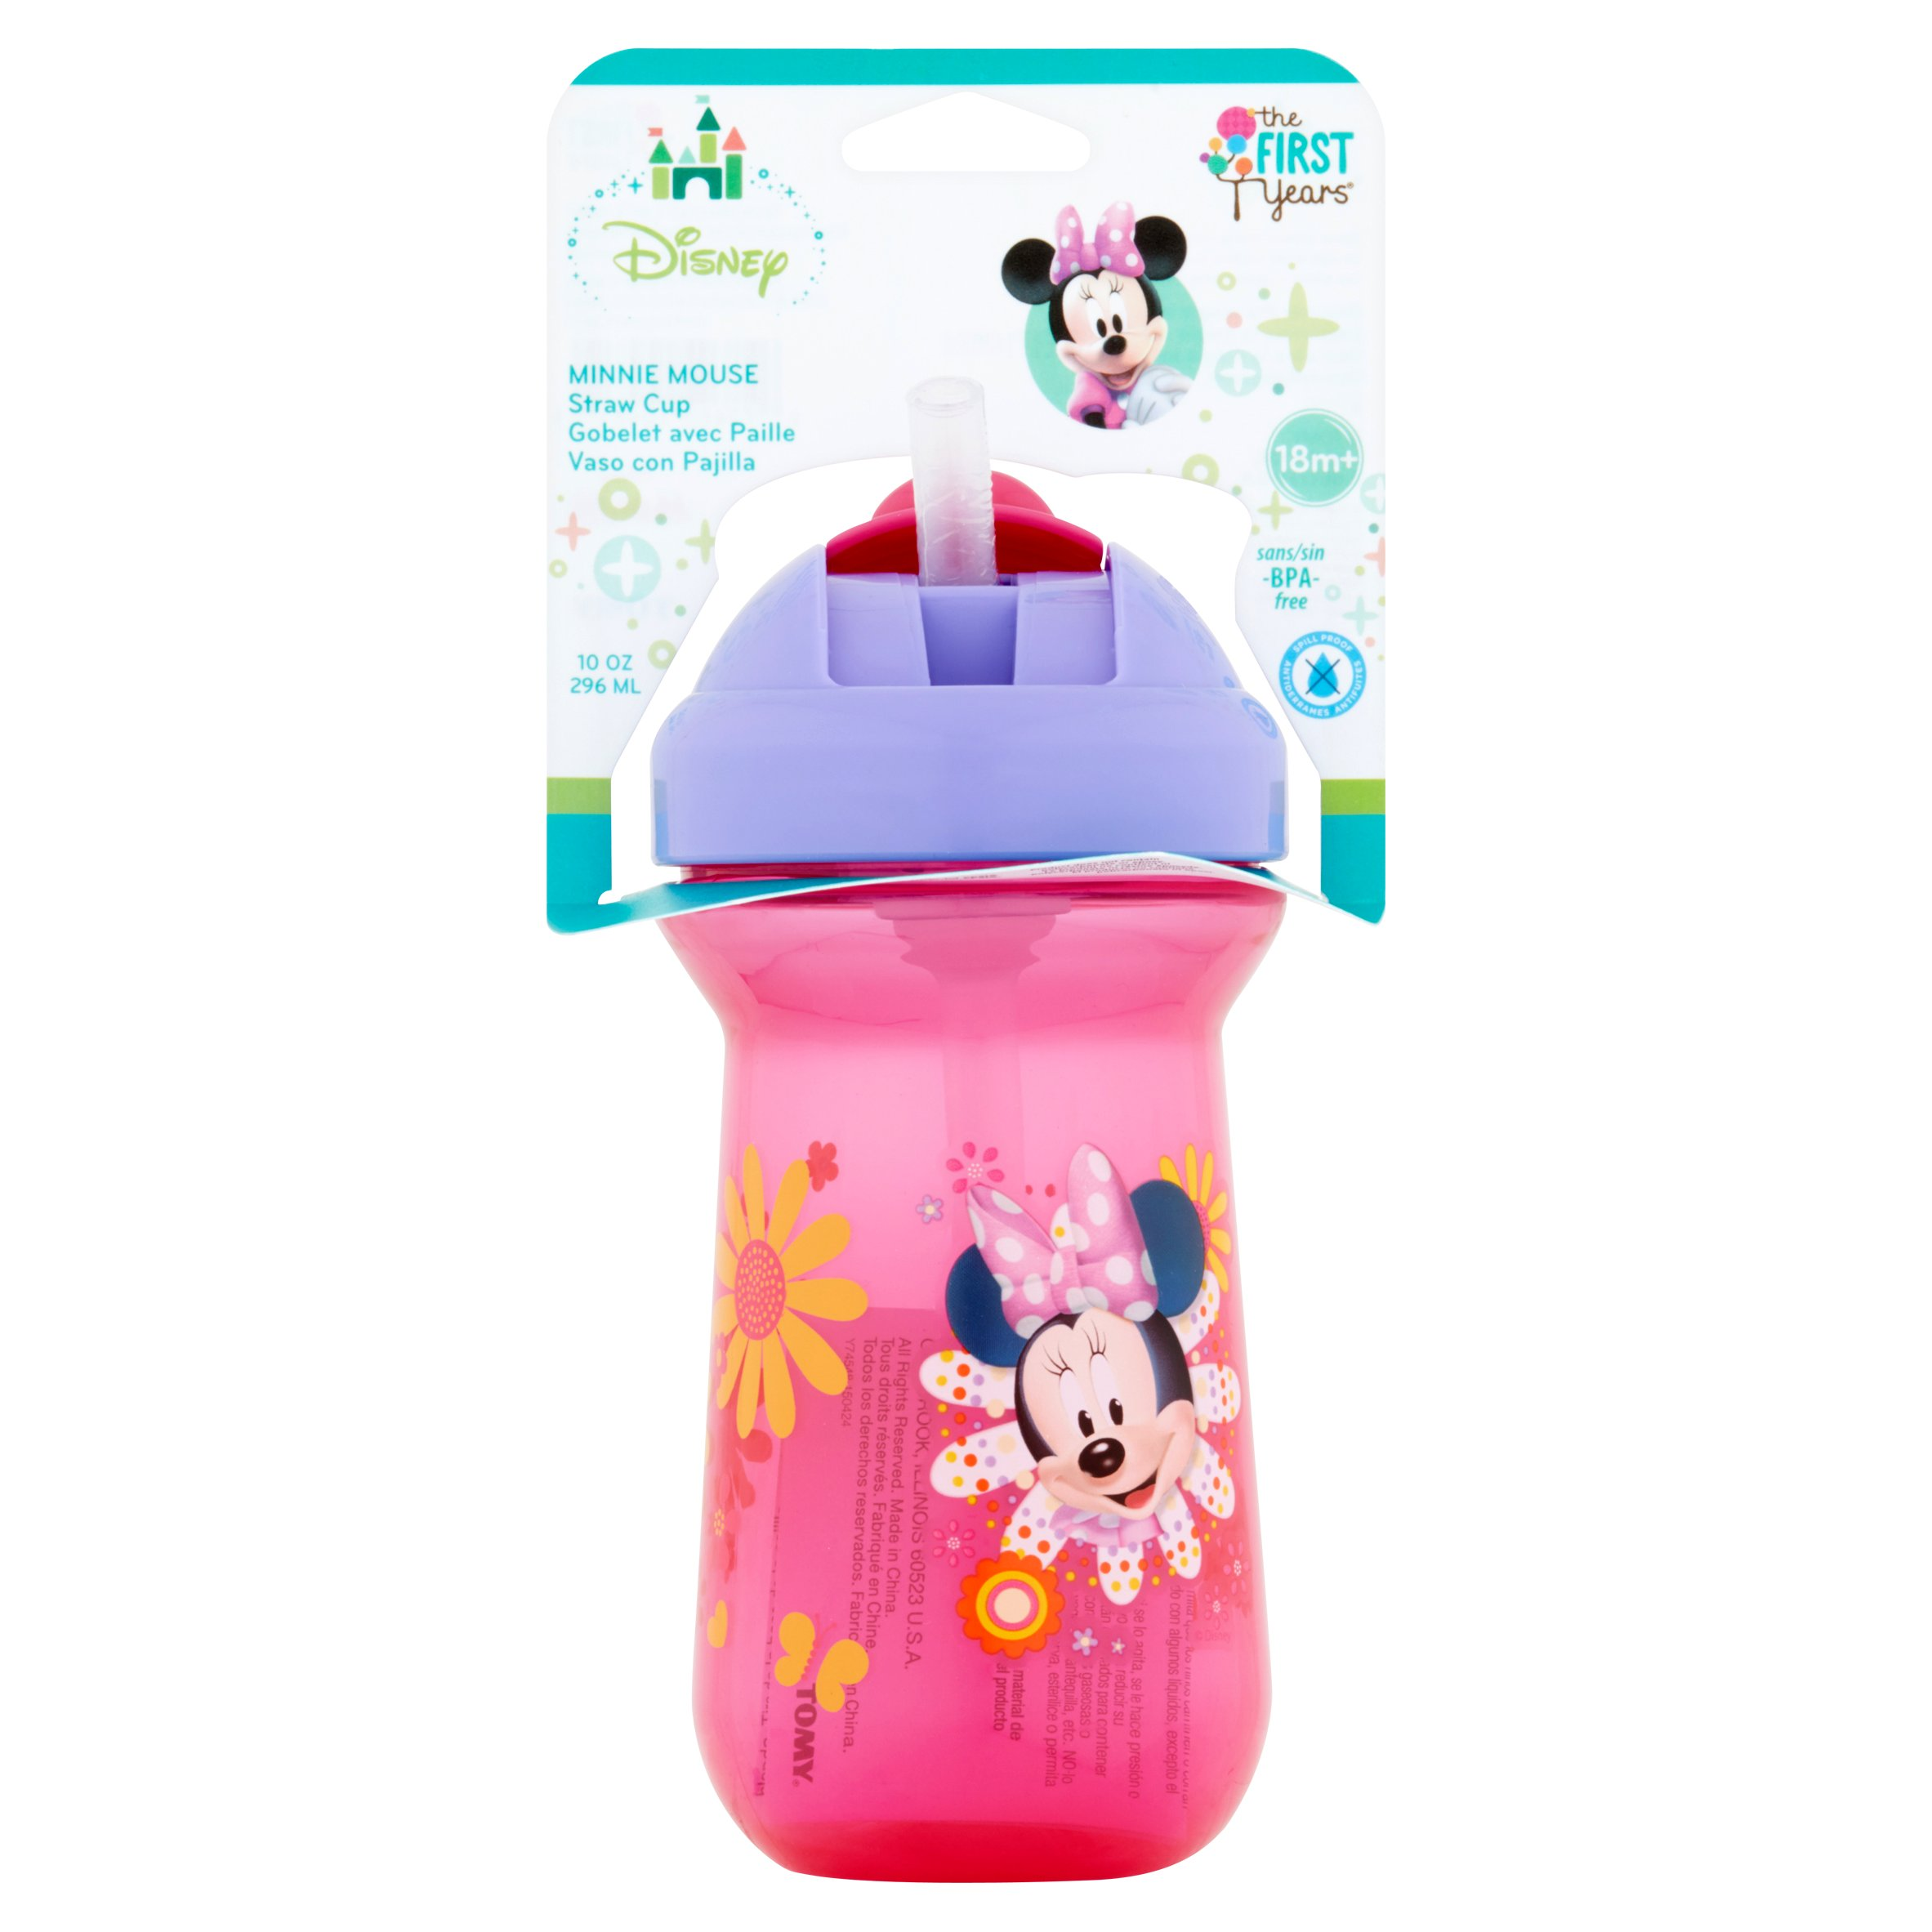 The First Years Disney Minnie Mouse Straw Cup 10oz